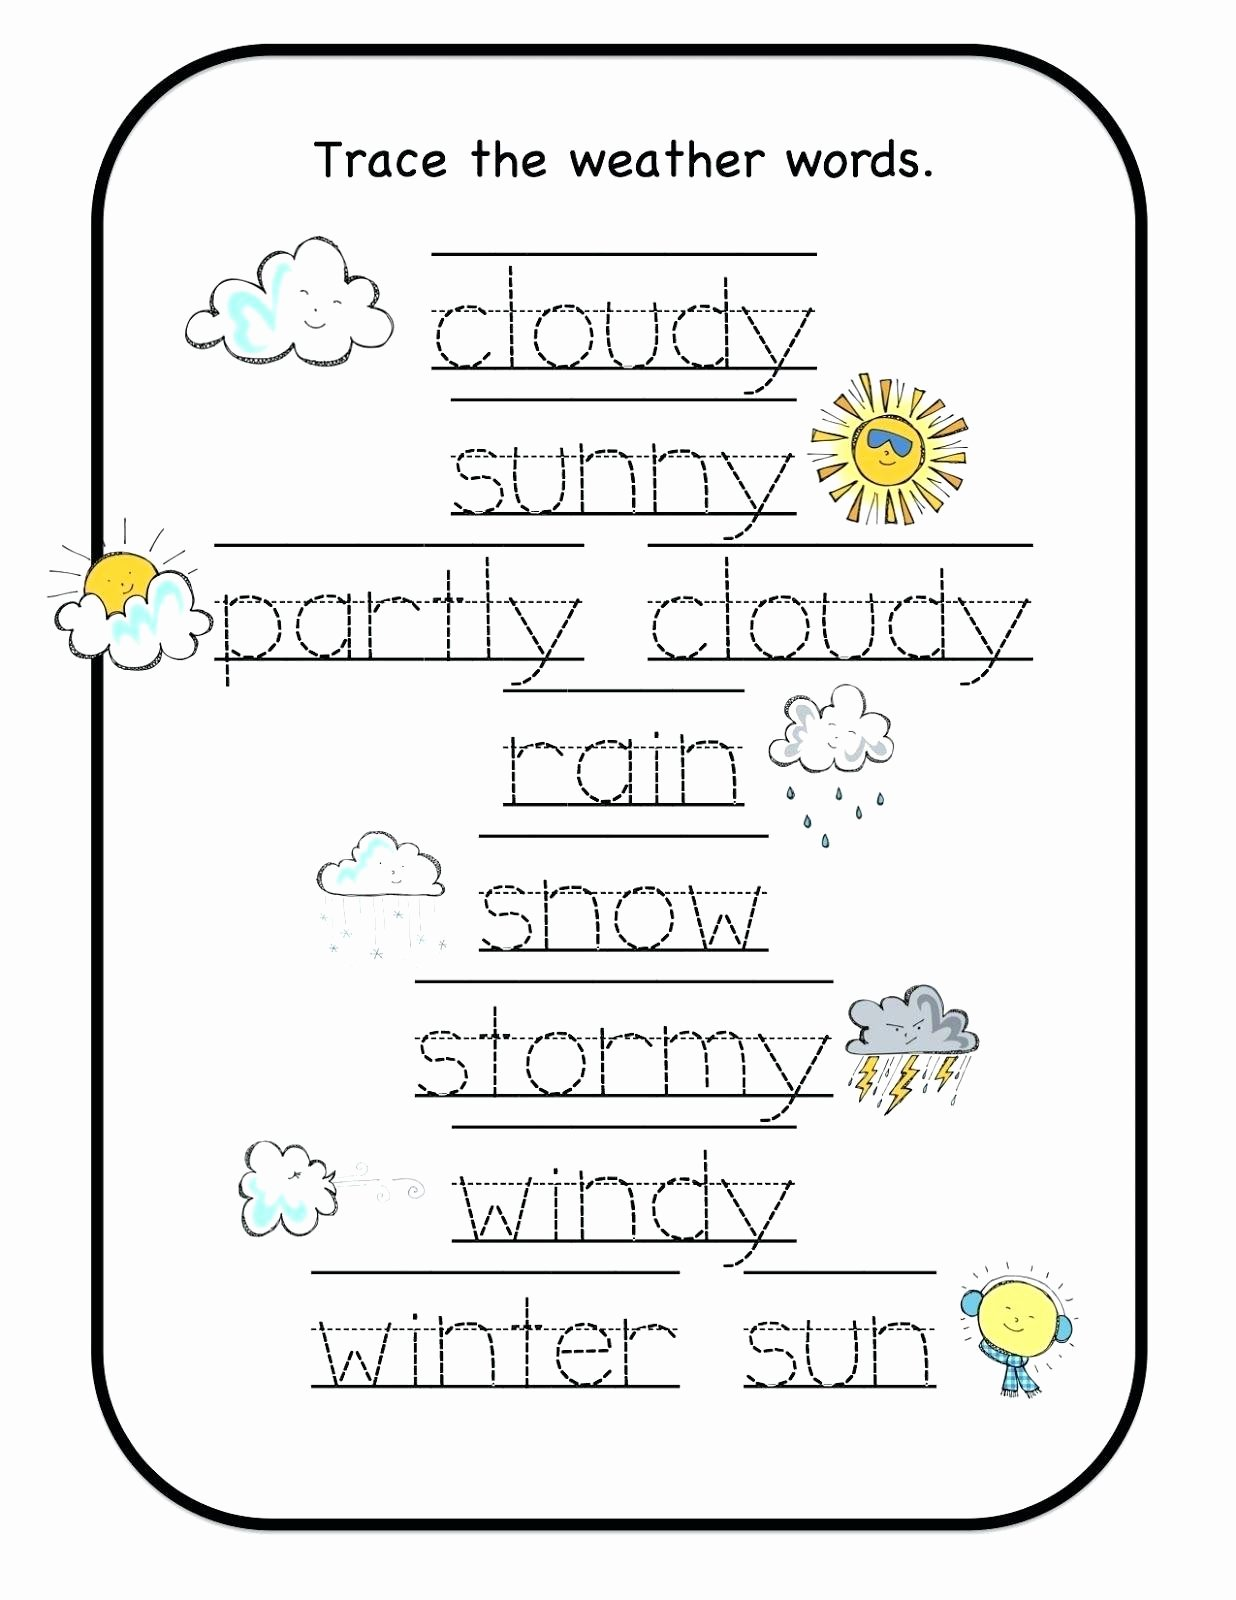 Free Printable Weather Worksheets for Preschoolers Best Of Preschool Worksheets Weather – Lbwomen